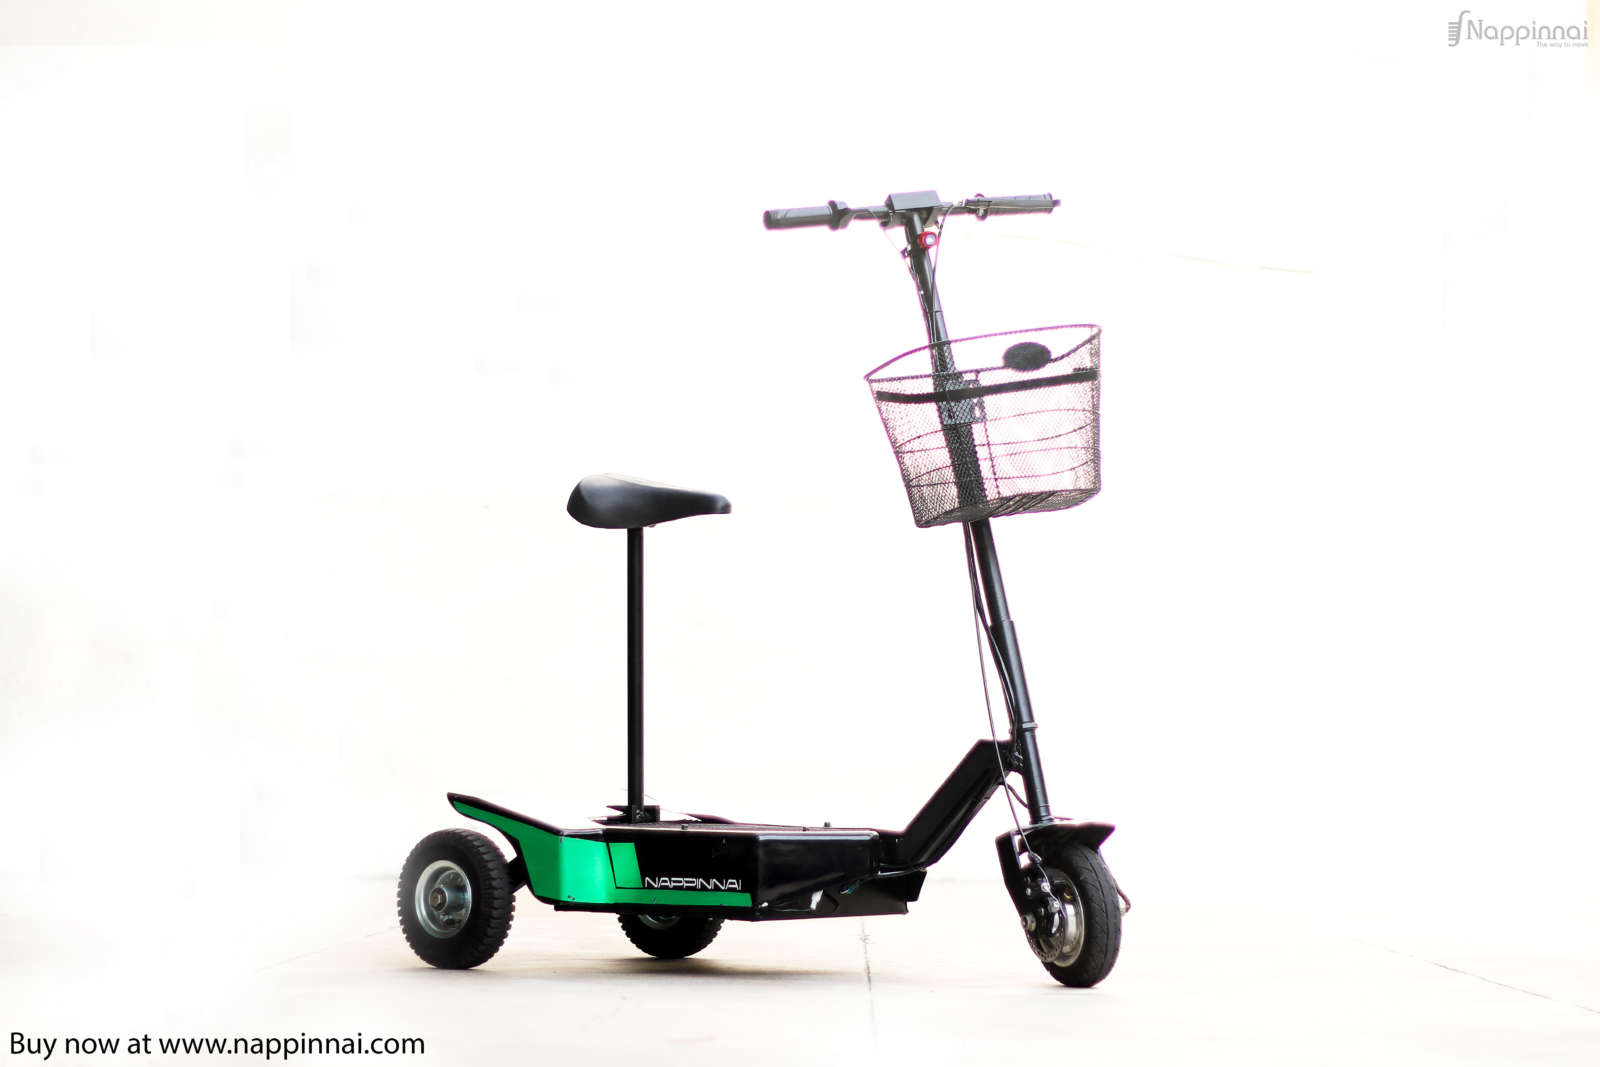 Nappinnai S Scotra Cml Is A Small Electric Trike That